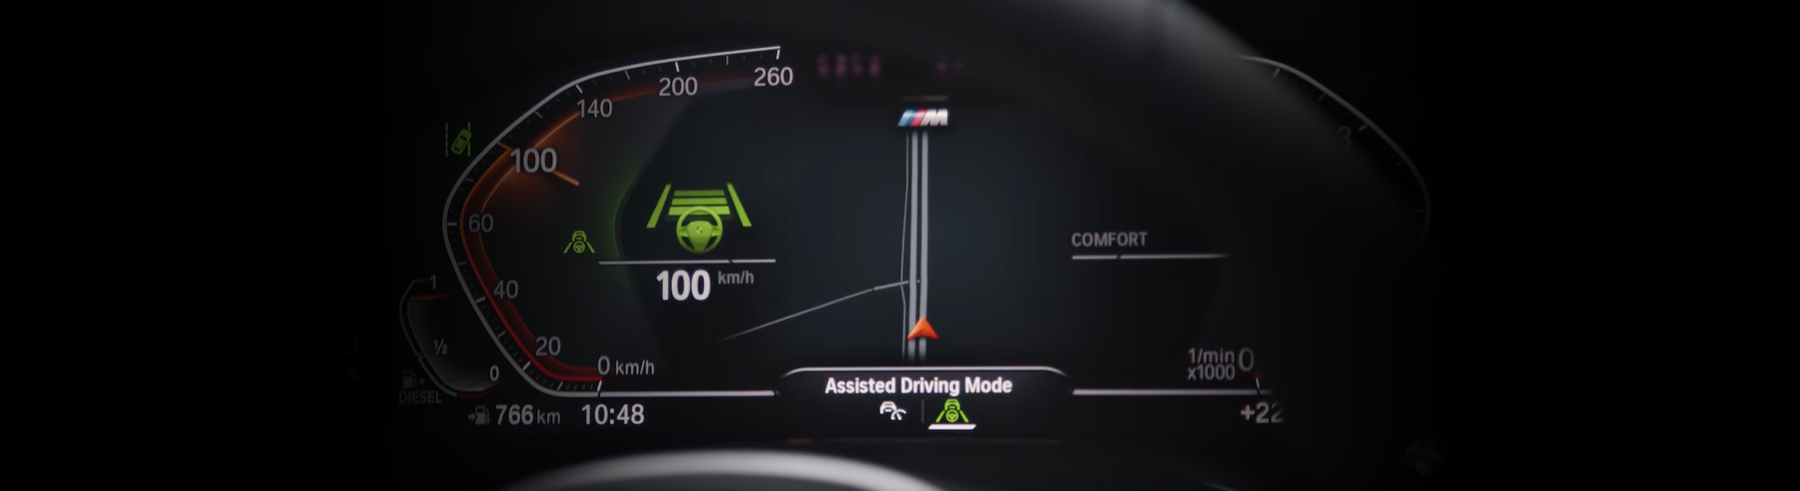 How to Use BMW Lane Change Assistant